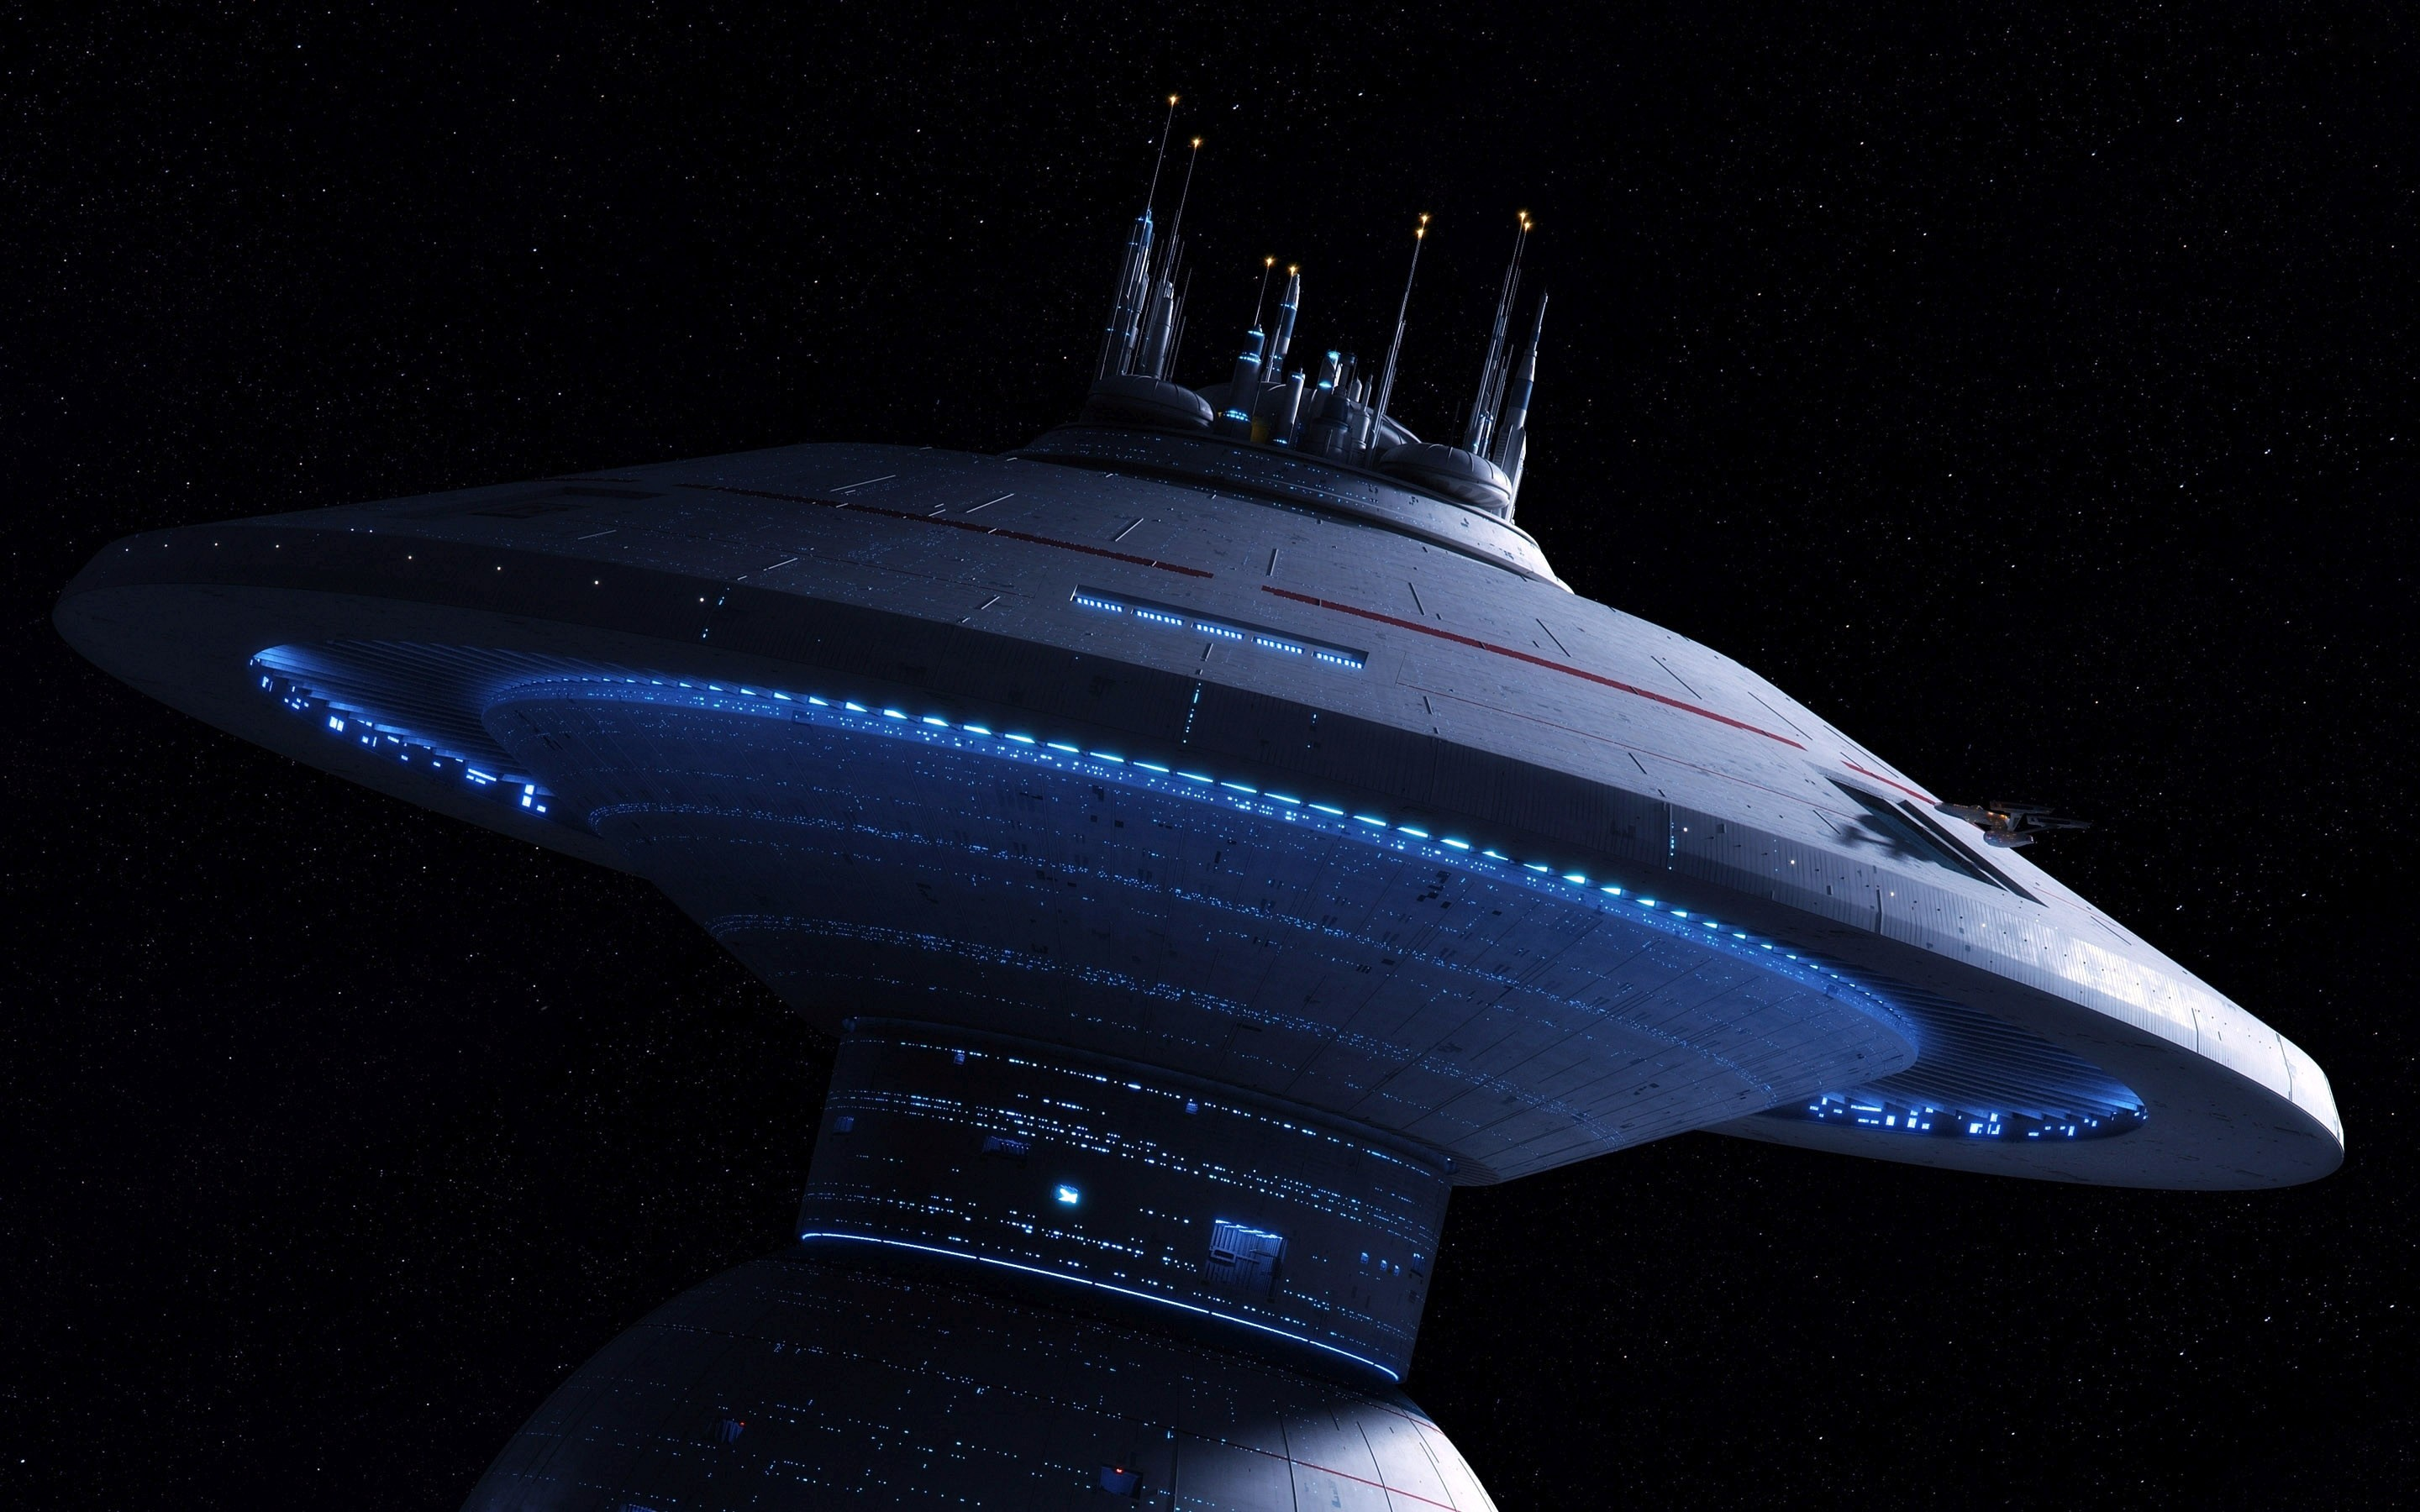 General 2880x1800 Star Trek space station science fiction movies